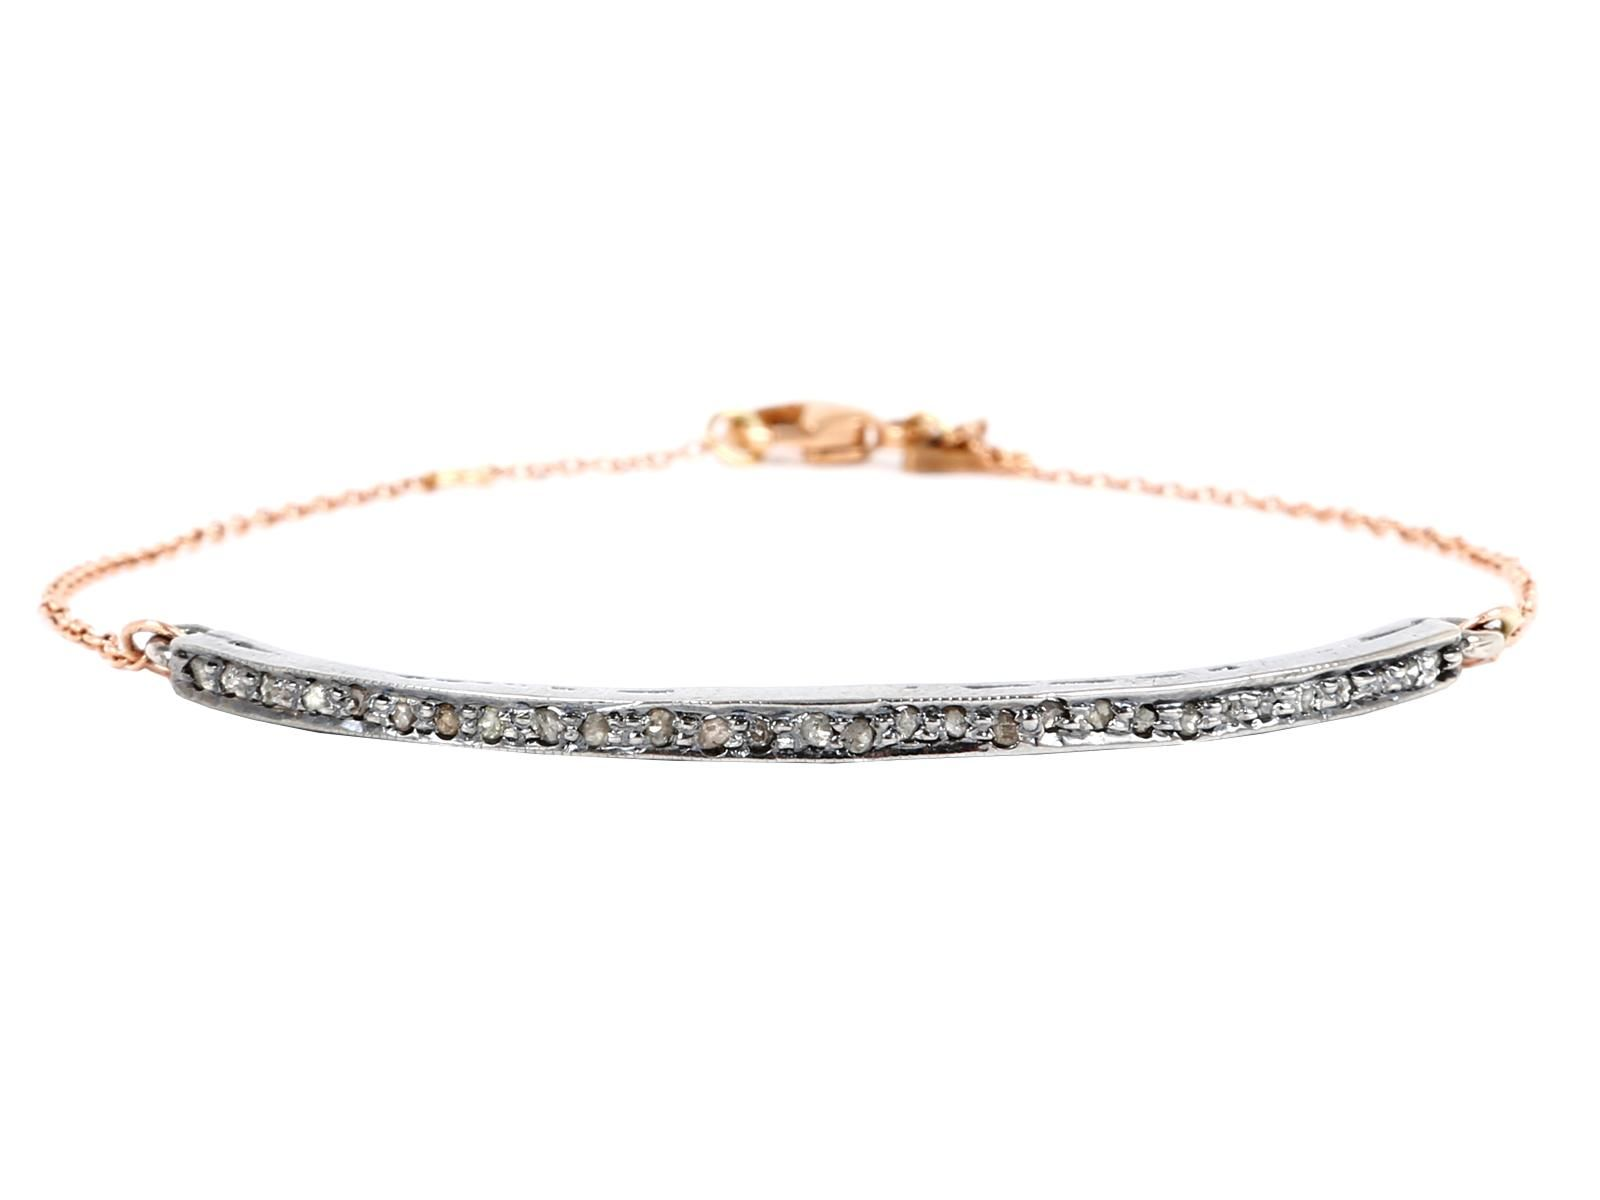 Long, lithe, and lean, like a graceful dancer theMercer Bracelet adorns your hand with effortless elegance with a silver bar crafted from 925 rhodium featuring .35 carats of champagne diamonds.